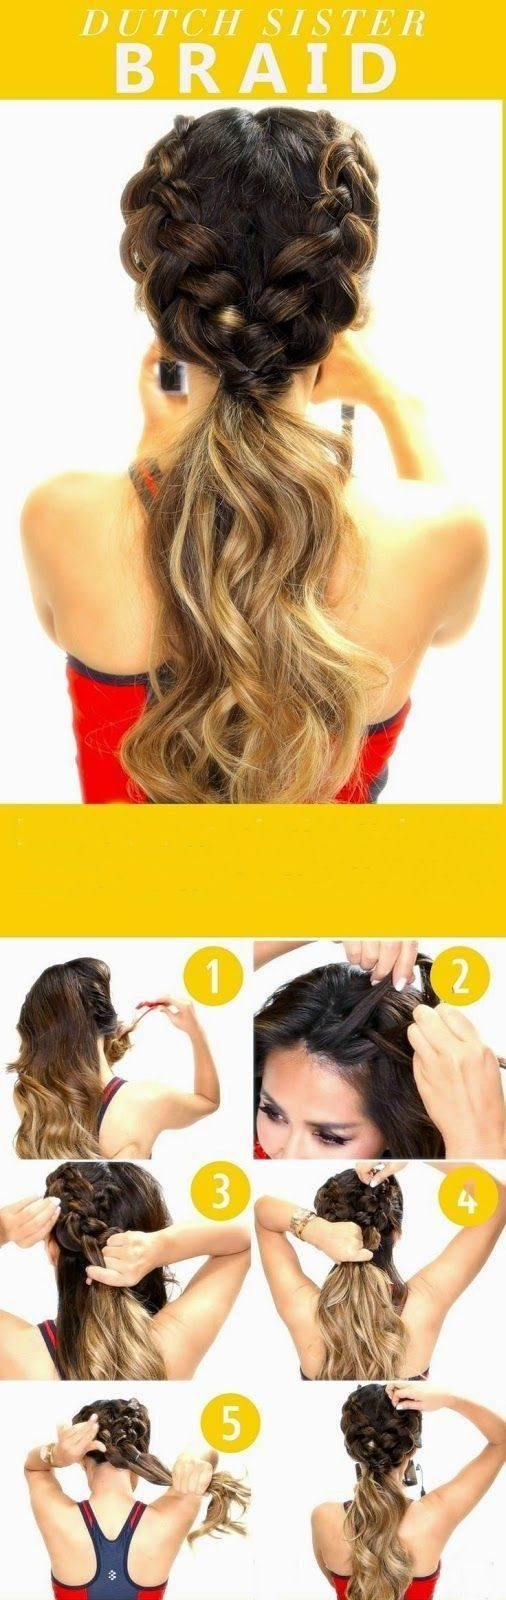 Cool supereasy trendy hairstyles for school hairstyles